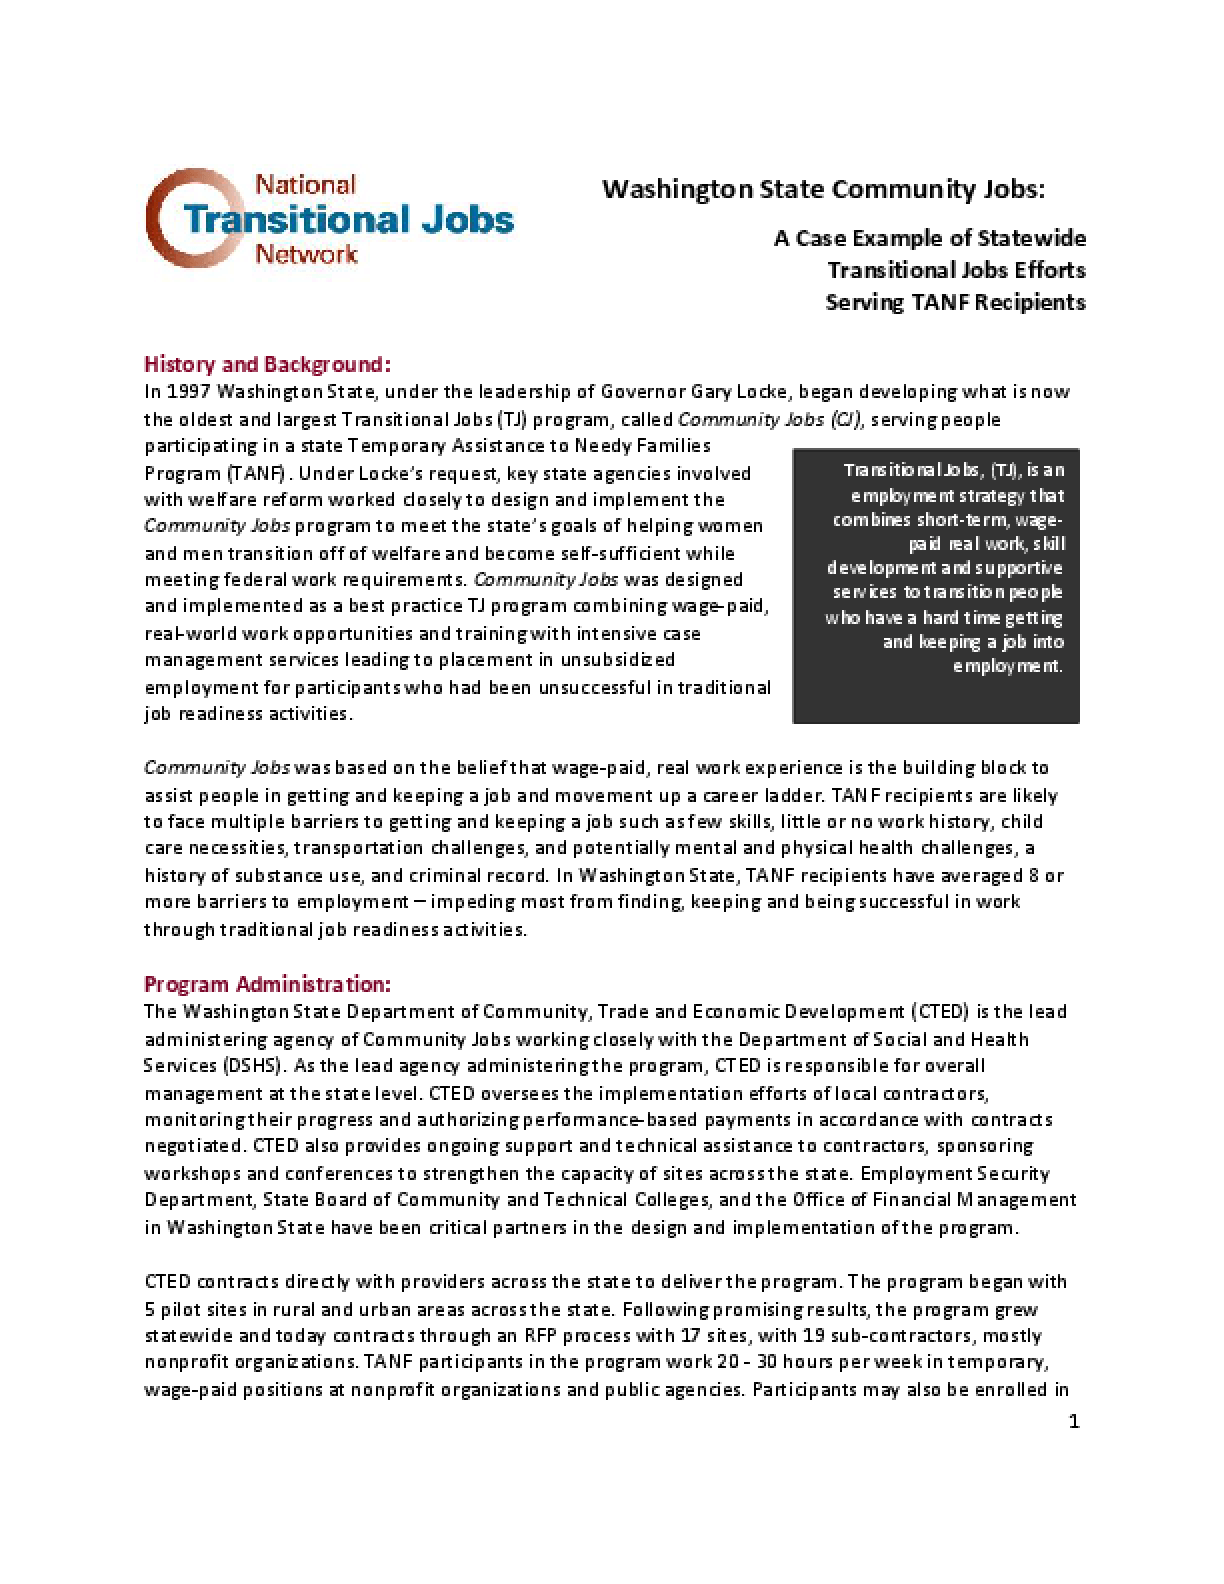 Washington State Community Jobs: A Case Example of Statewide Transitional Jobs Efforts Serving TANF Recipients